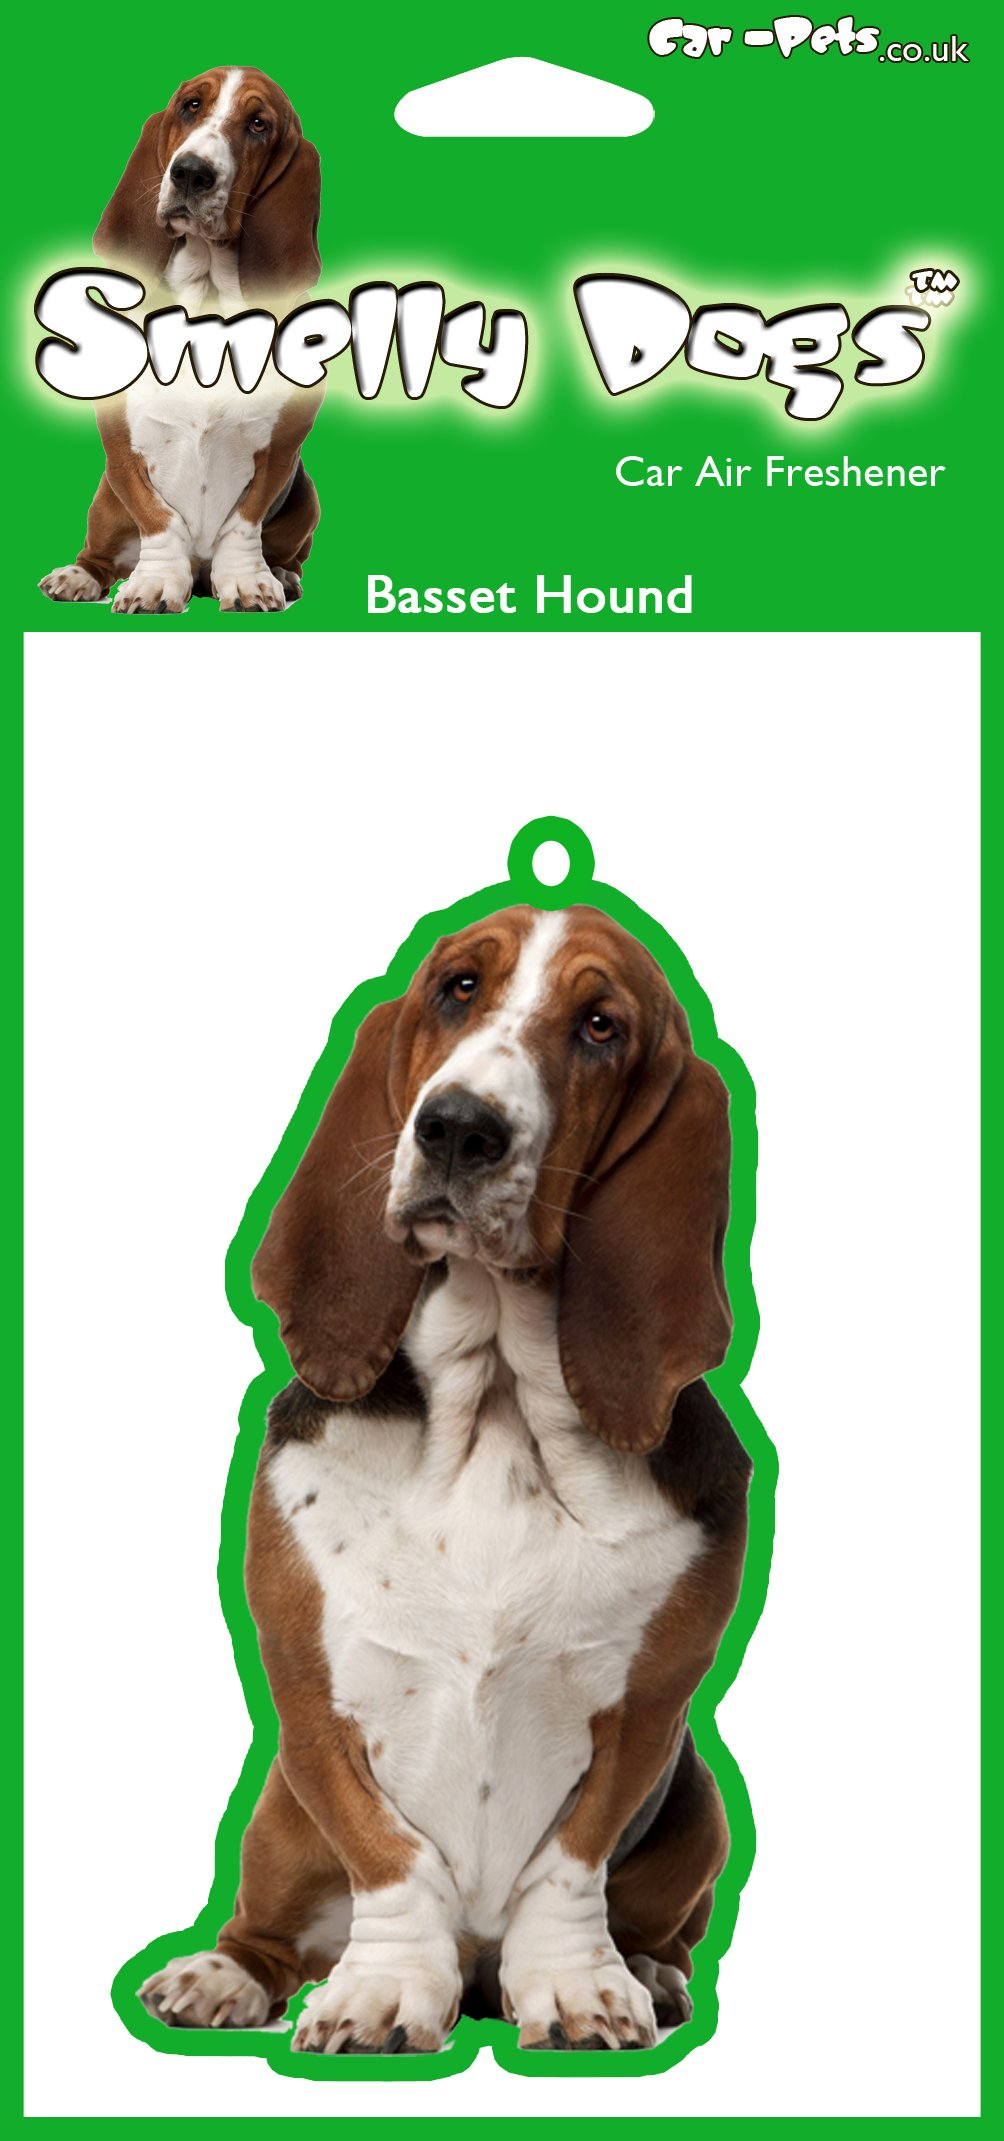 Basset Hound Dog – 2 x Delightful Car Air Fresheners